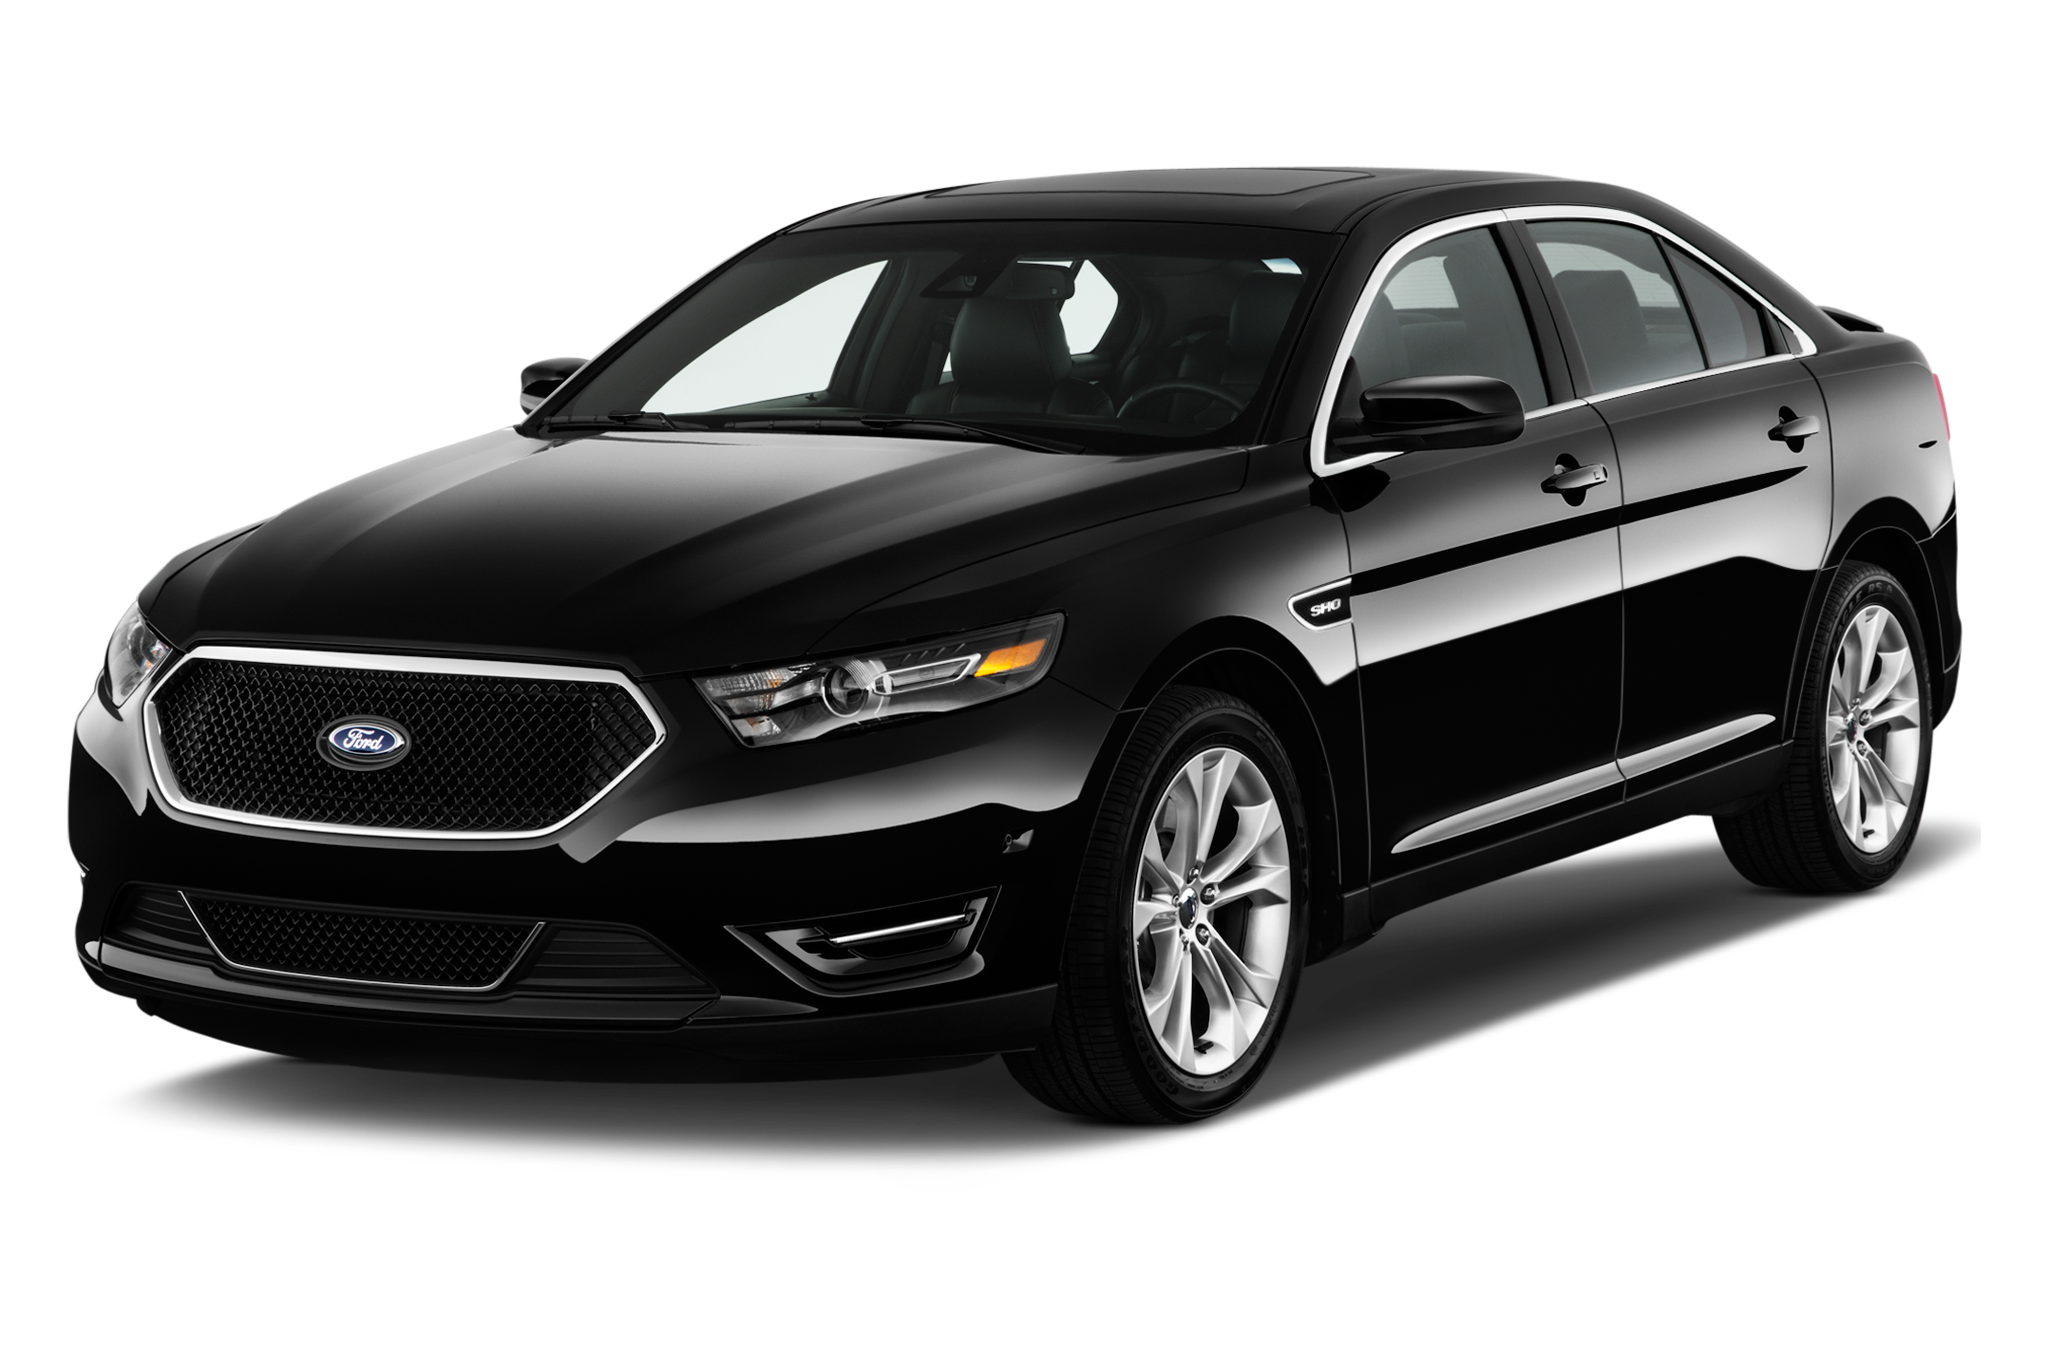 Ford Taurus Sho   Ford Approaches  Percent Of Police Car Market